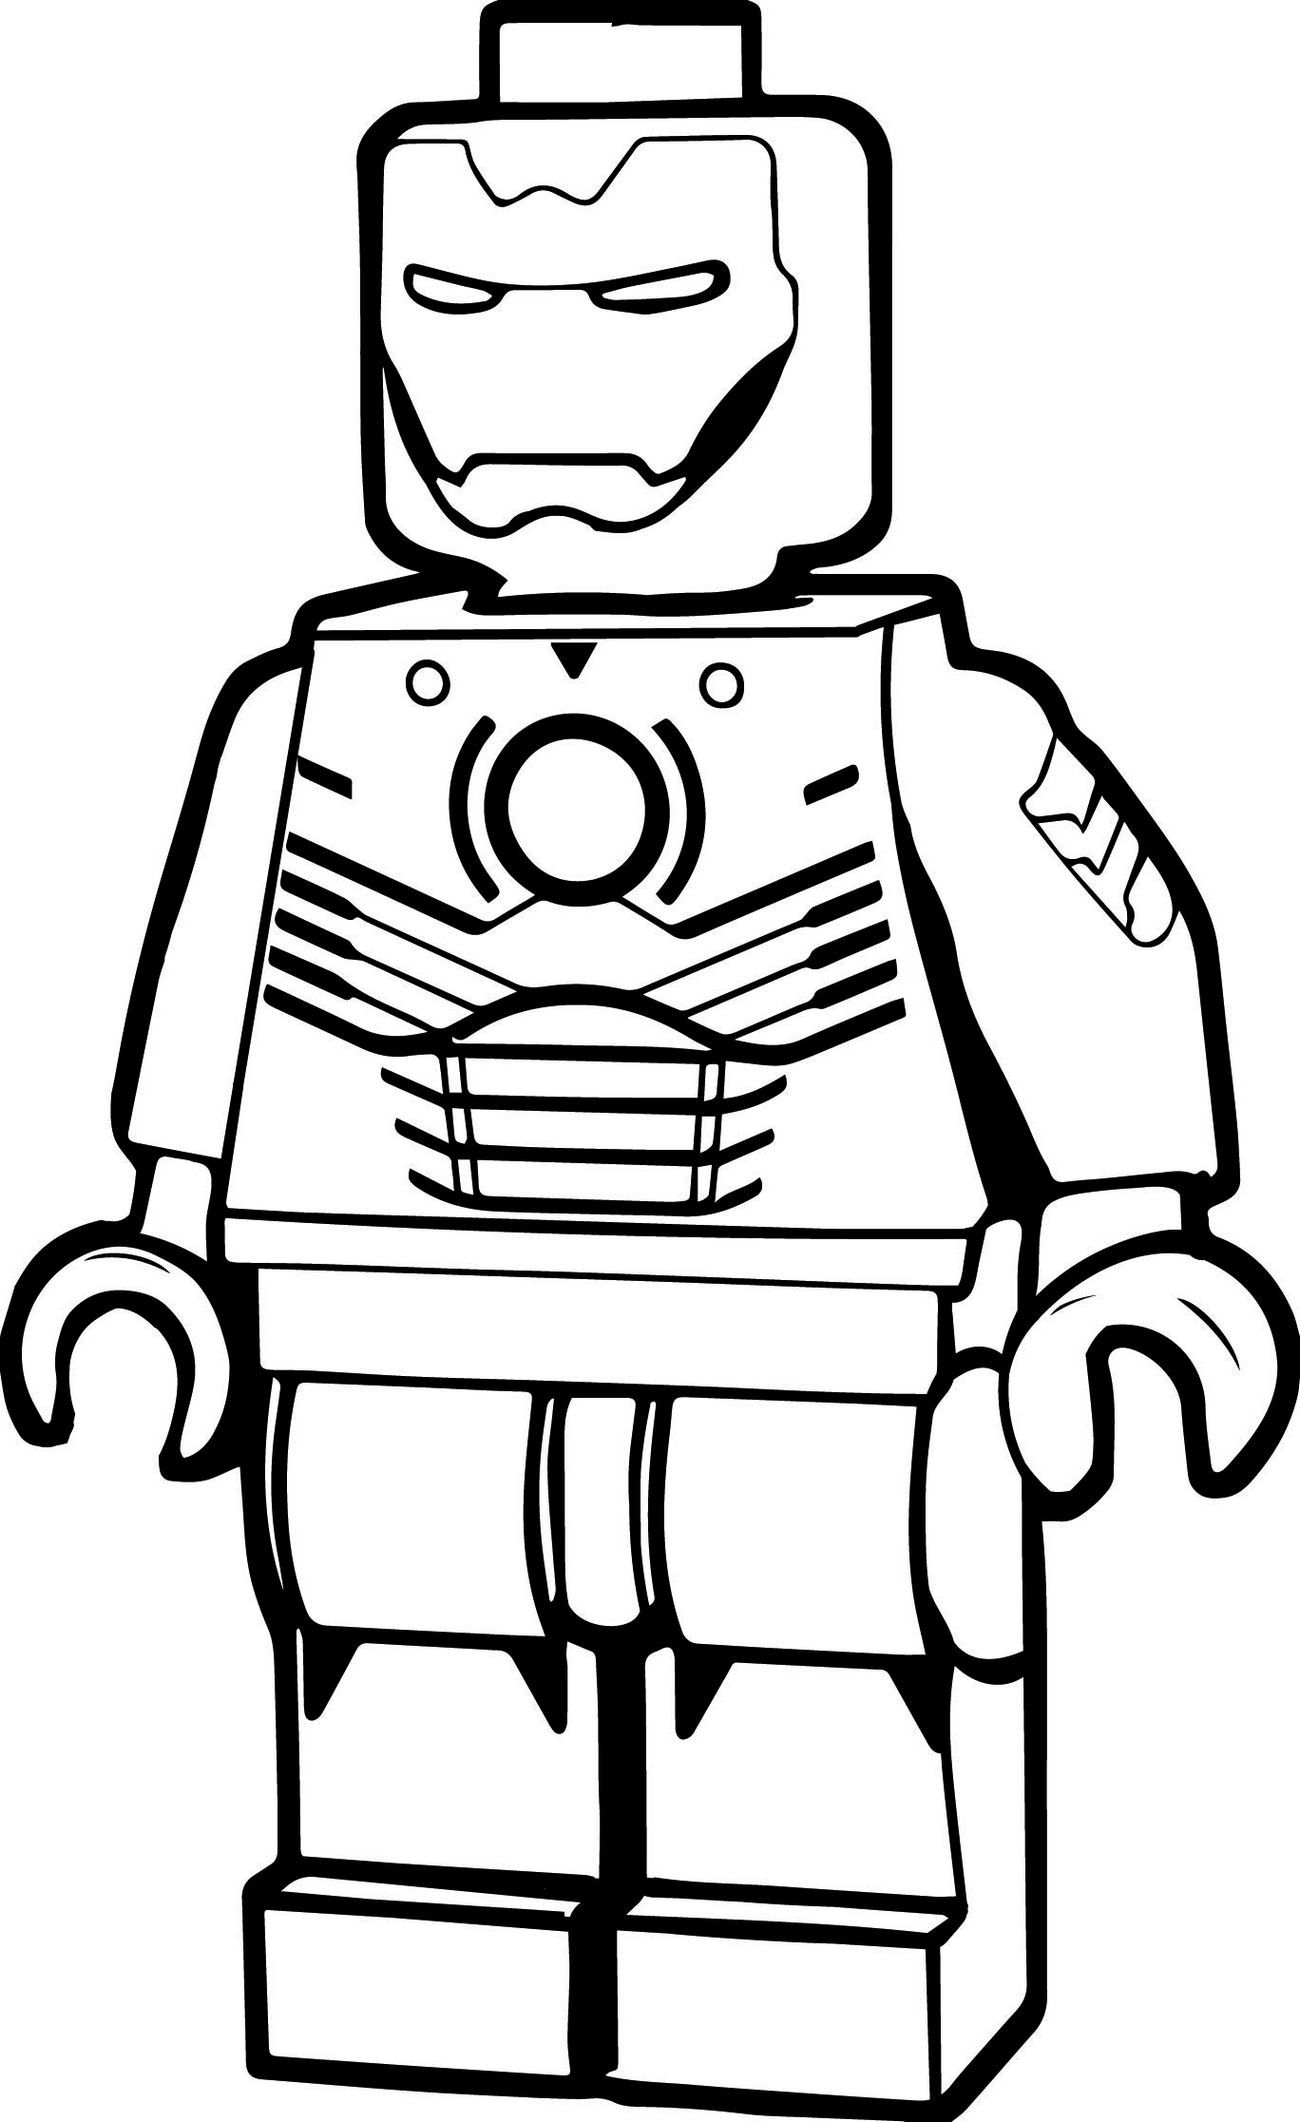 lego drawings to colour lego drawing free download on clipartmag drawings colour to lego